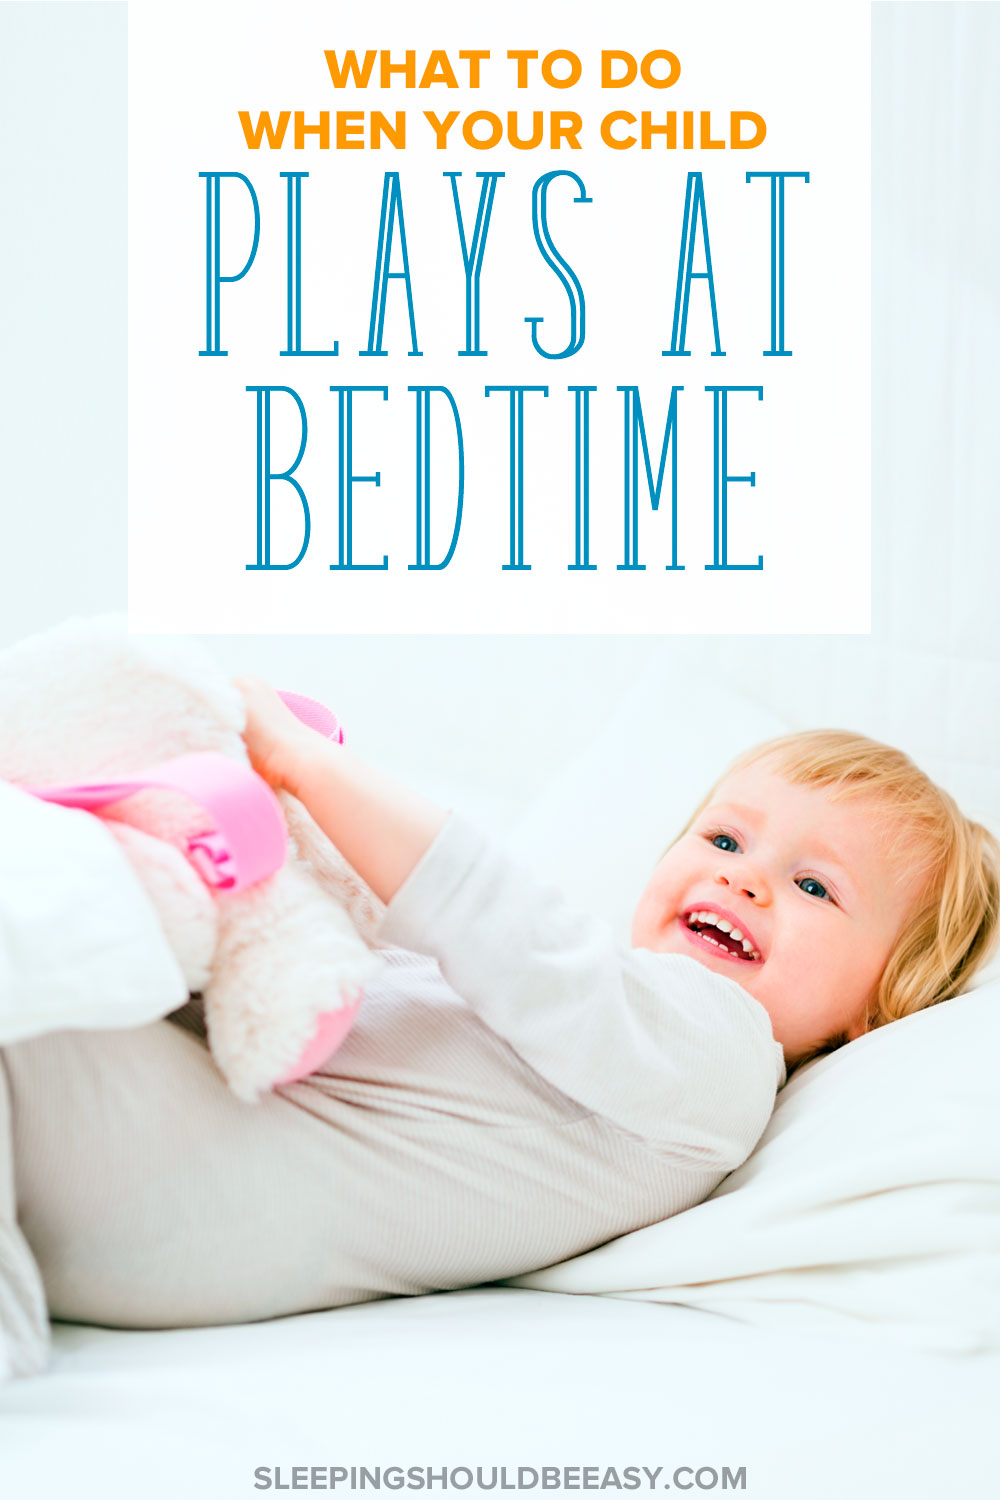 You've got a problem on your hands: come bedtime, your child plays instead of sleeps. Here are tips on getting a toddler to sleep instead of play.